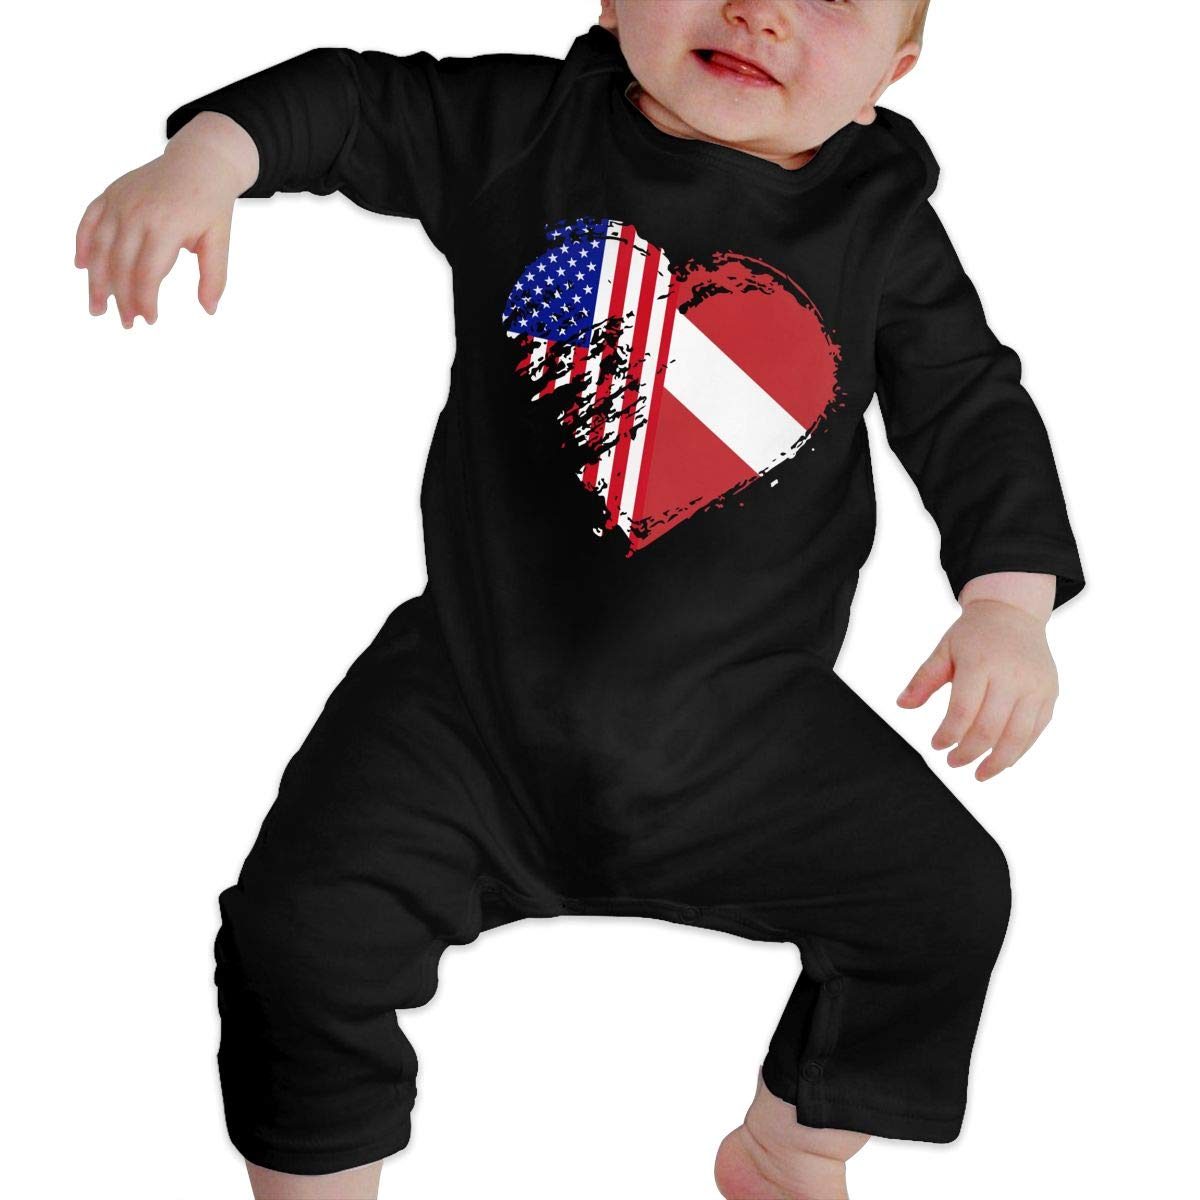 Mri-le1 Newborn Baby Long Sleeved Coveralls Grungy Dive American Flag Heart Kid Pajamas